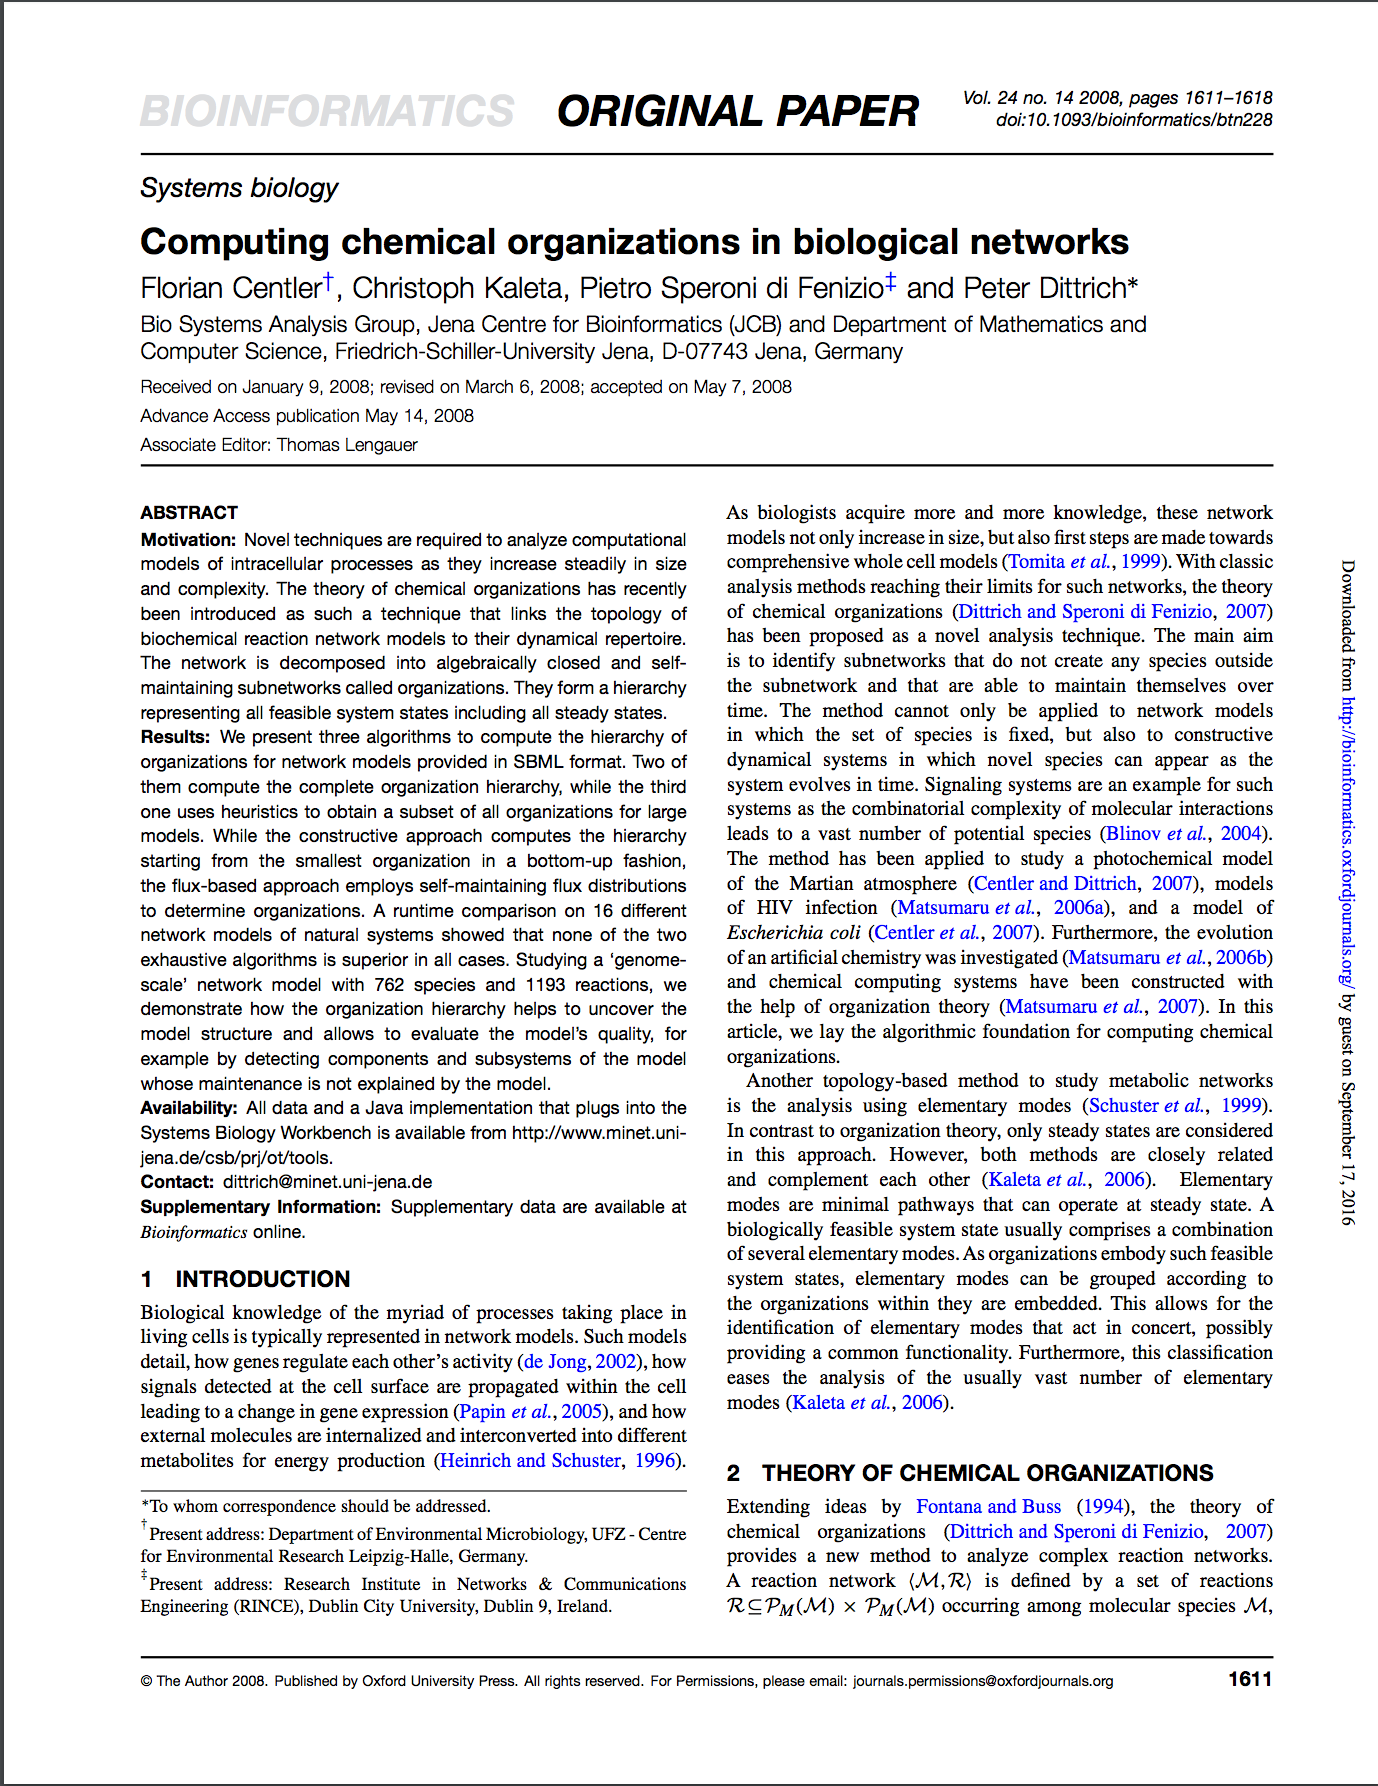 Computing chemical organizations in biological networks